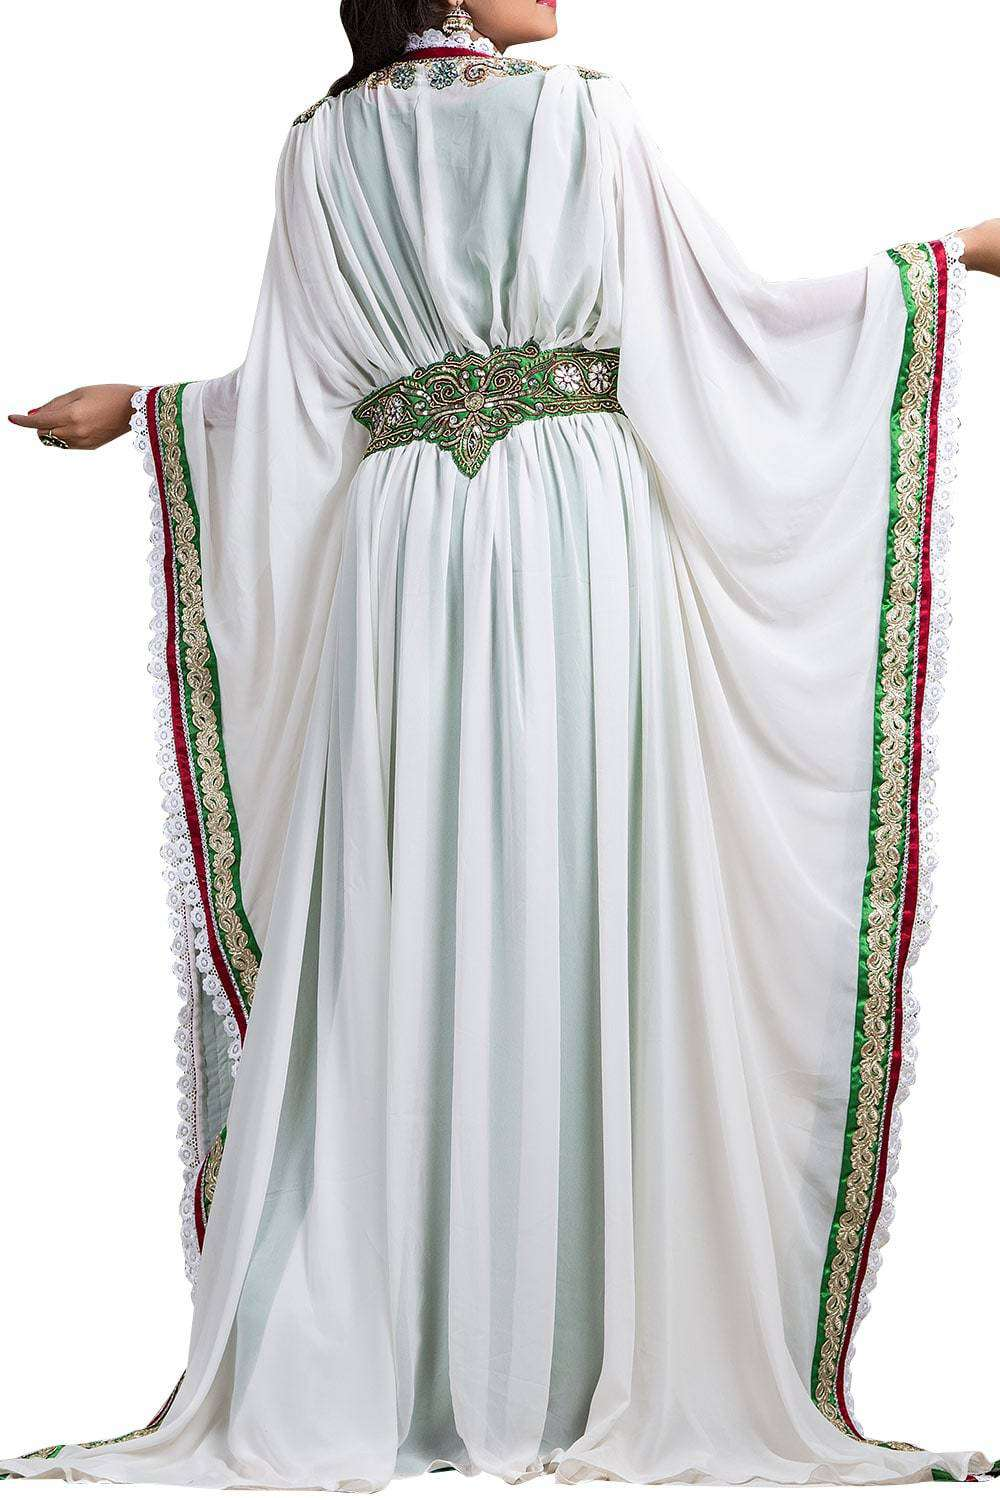 White and Green color Crepe Takchita